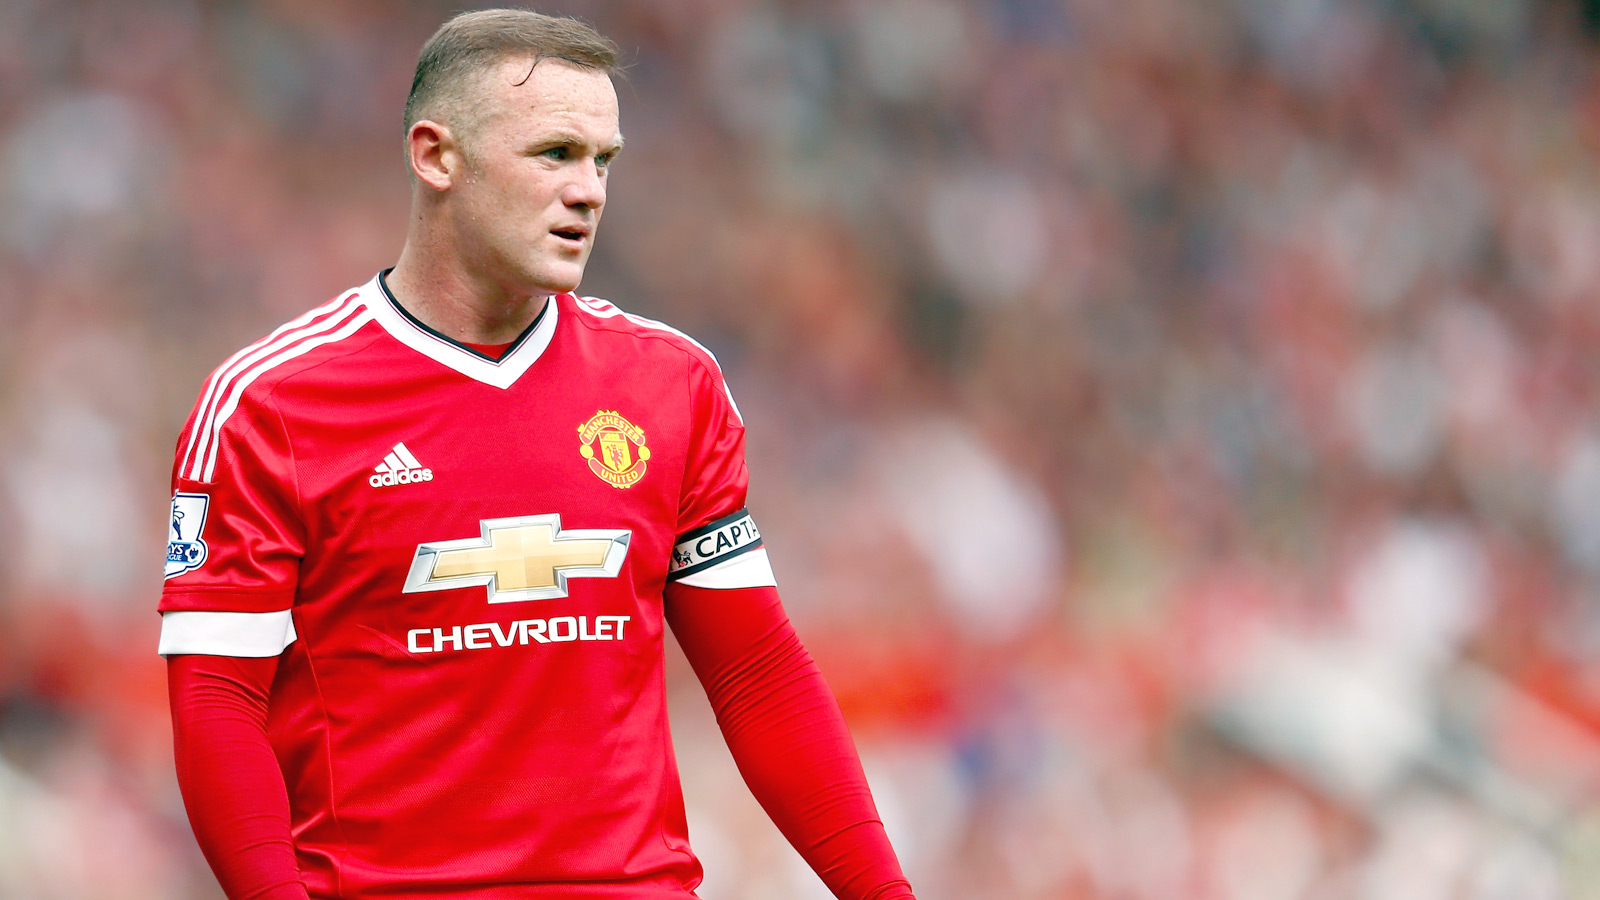 Report: Manchester United's Rooney set to miss Liverpool clash